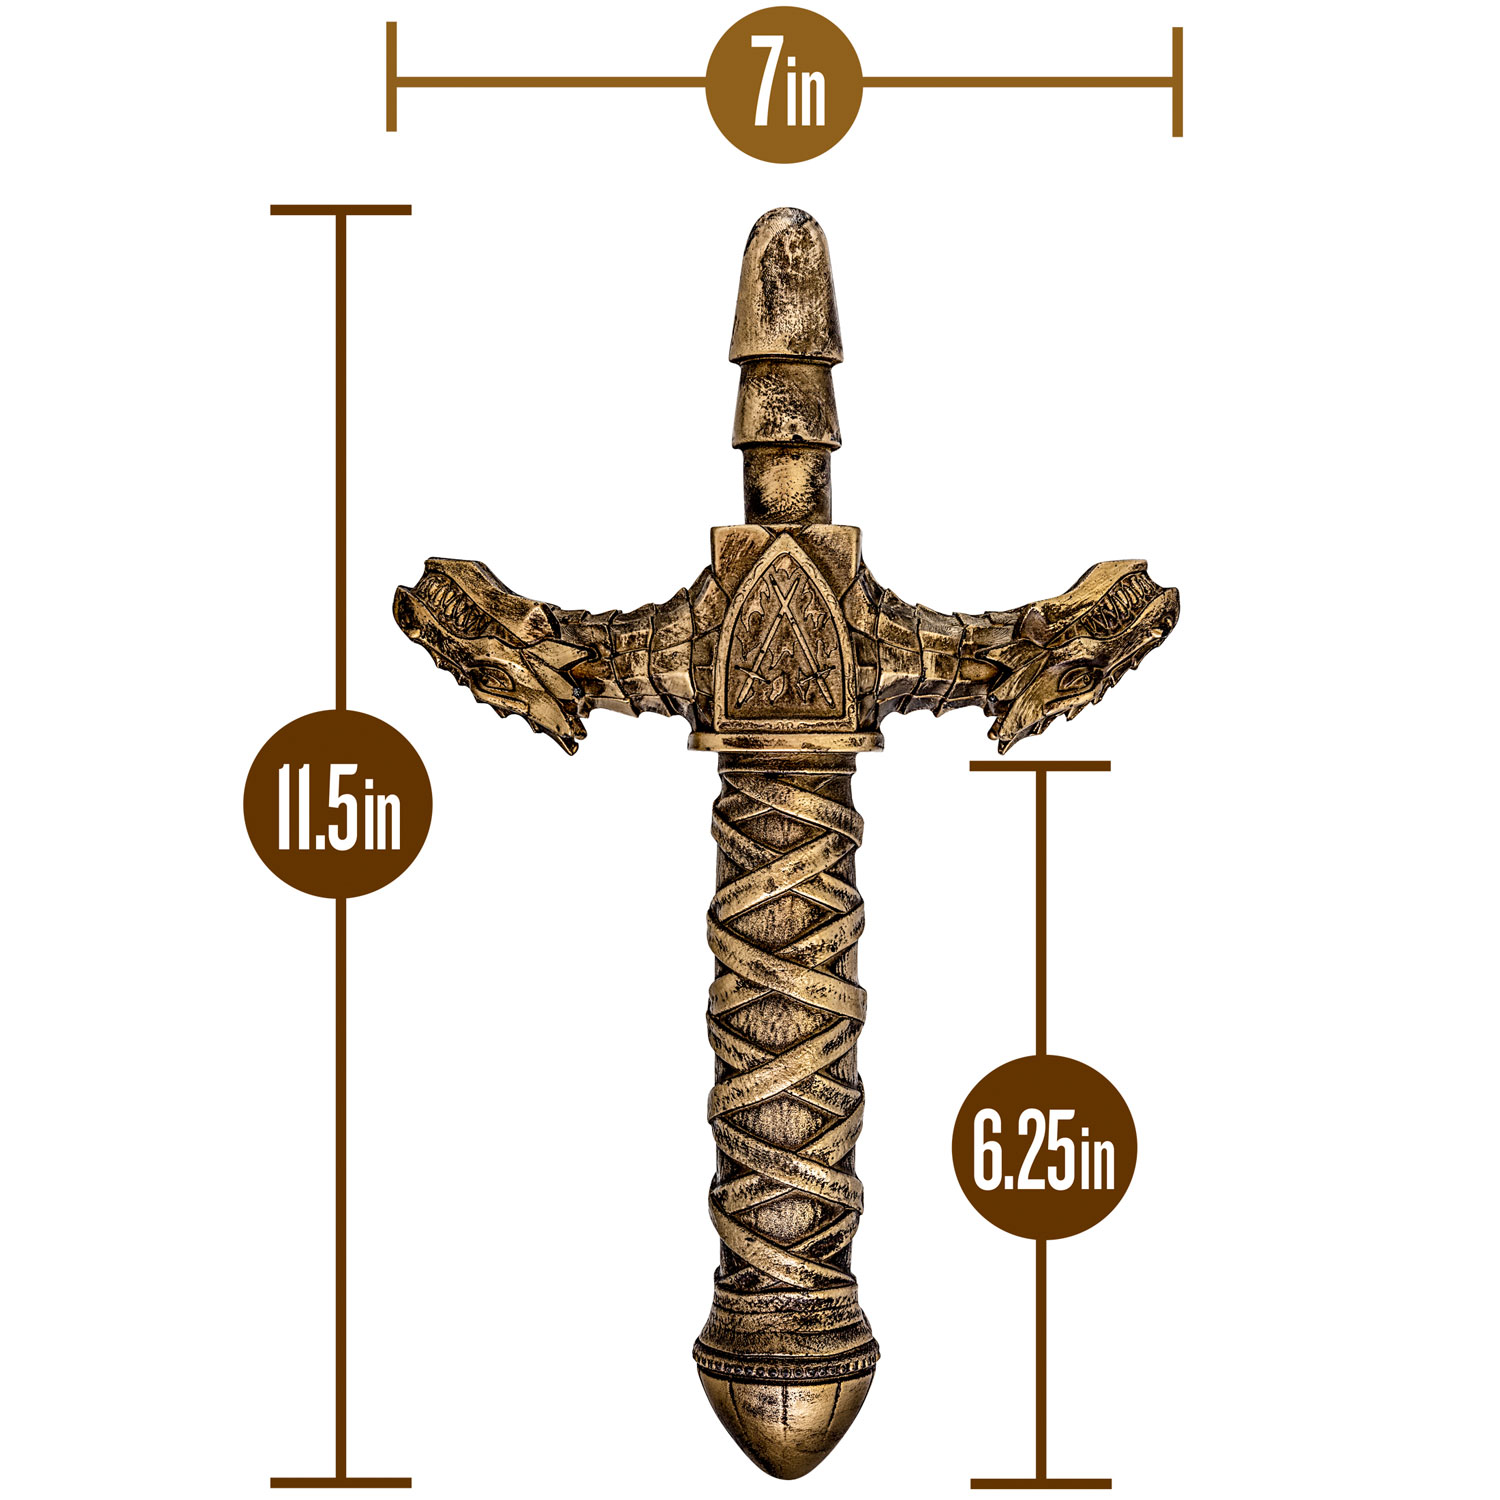 The Realm Drago Lock On Dragon Sword Dildo Handle - Measurements